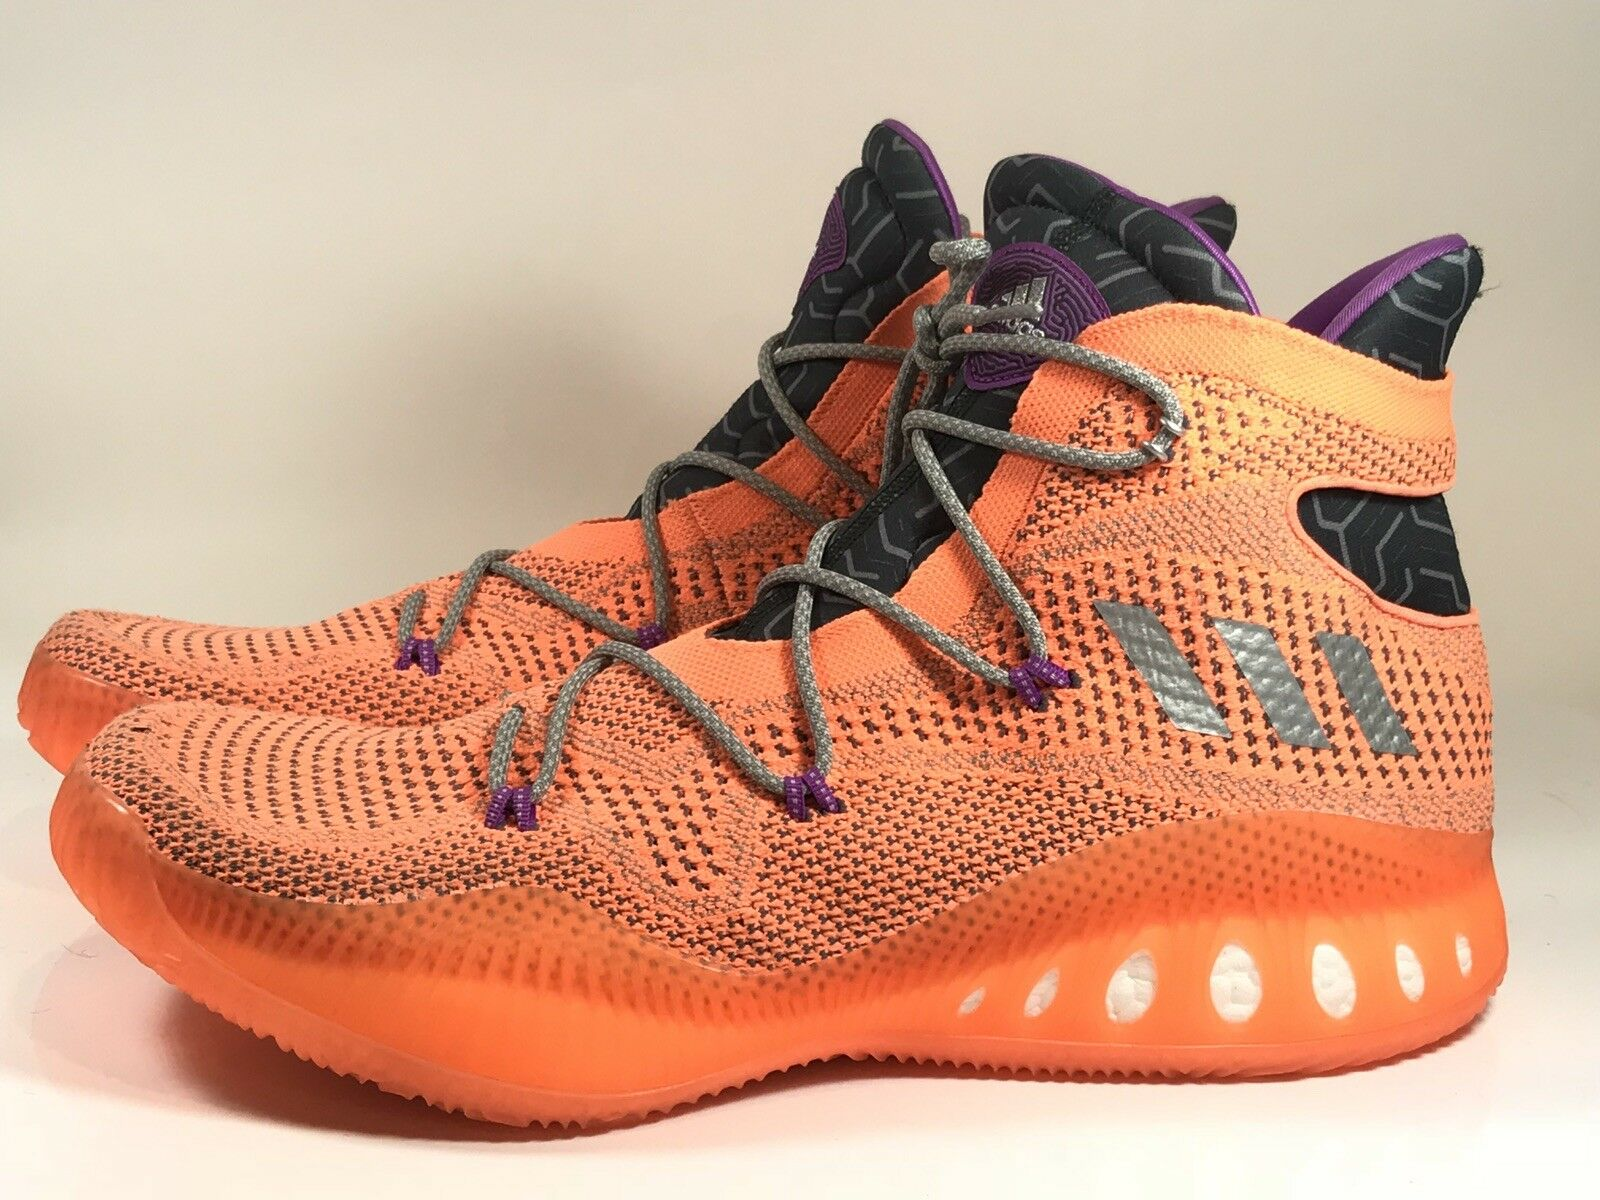 Adidas Crazy Explosive PK Primeknit ALL STAR Orange size 18 Ultra BB8370 Boost